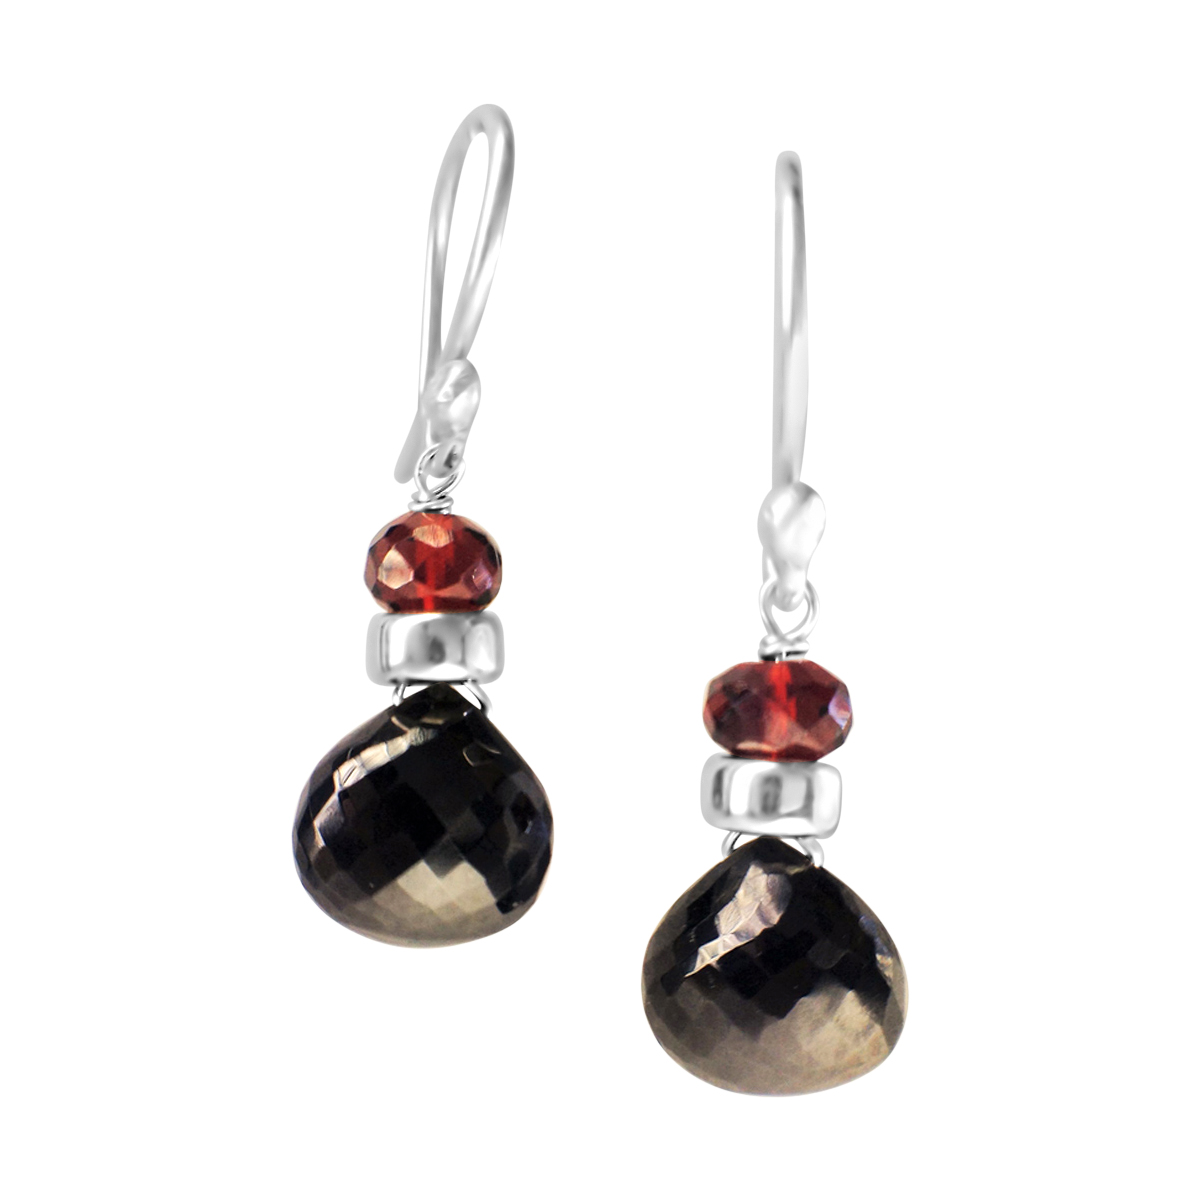 Perfume Bottle black spinel and garnet earrings